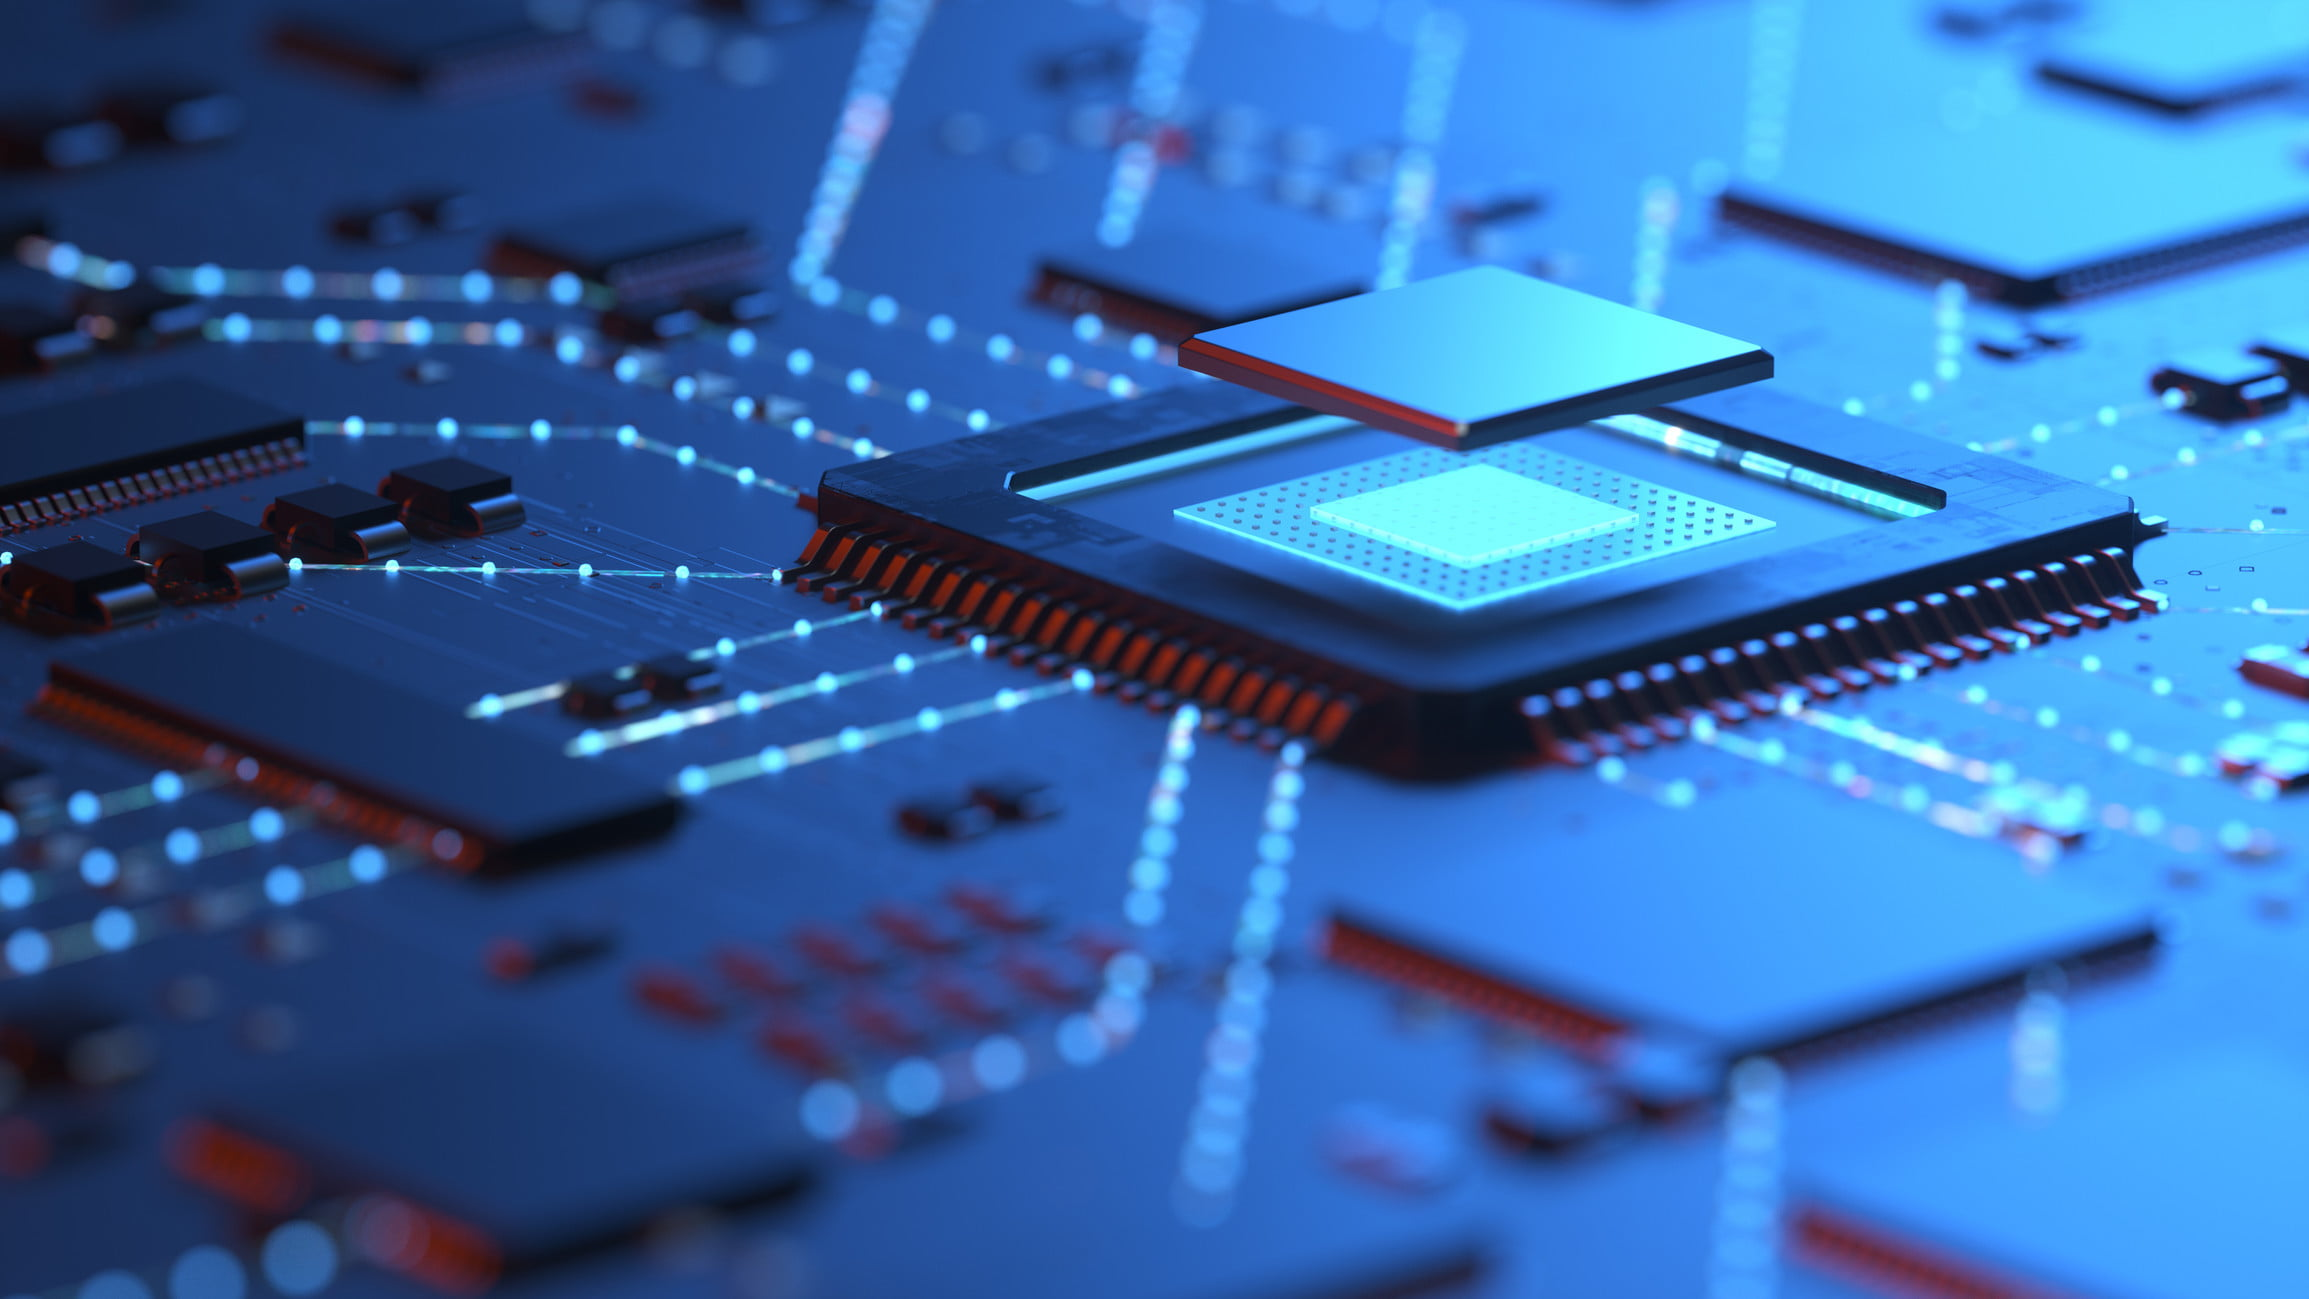 Moore's law is reaching its limits. Could graphene circuits help?